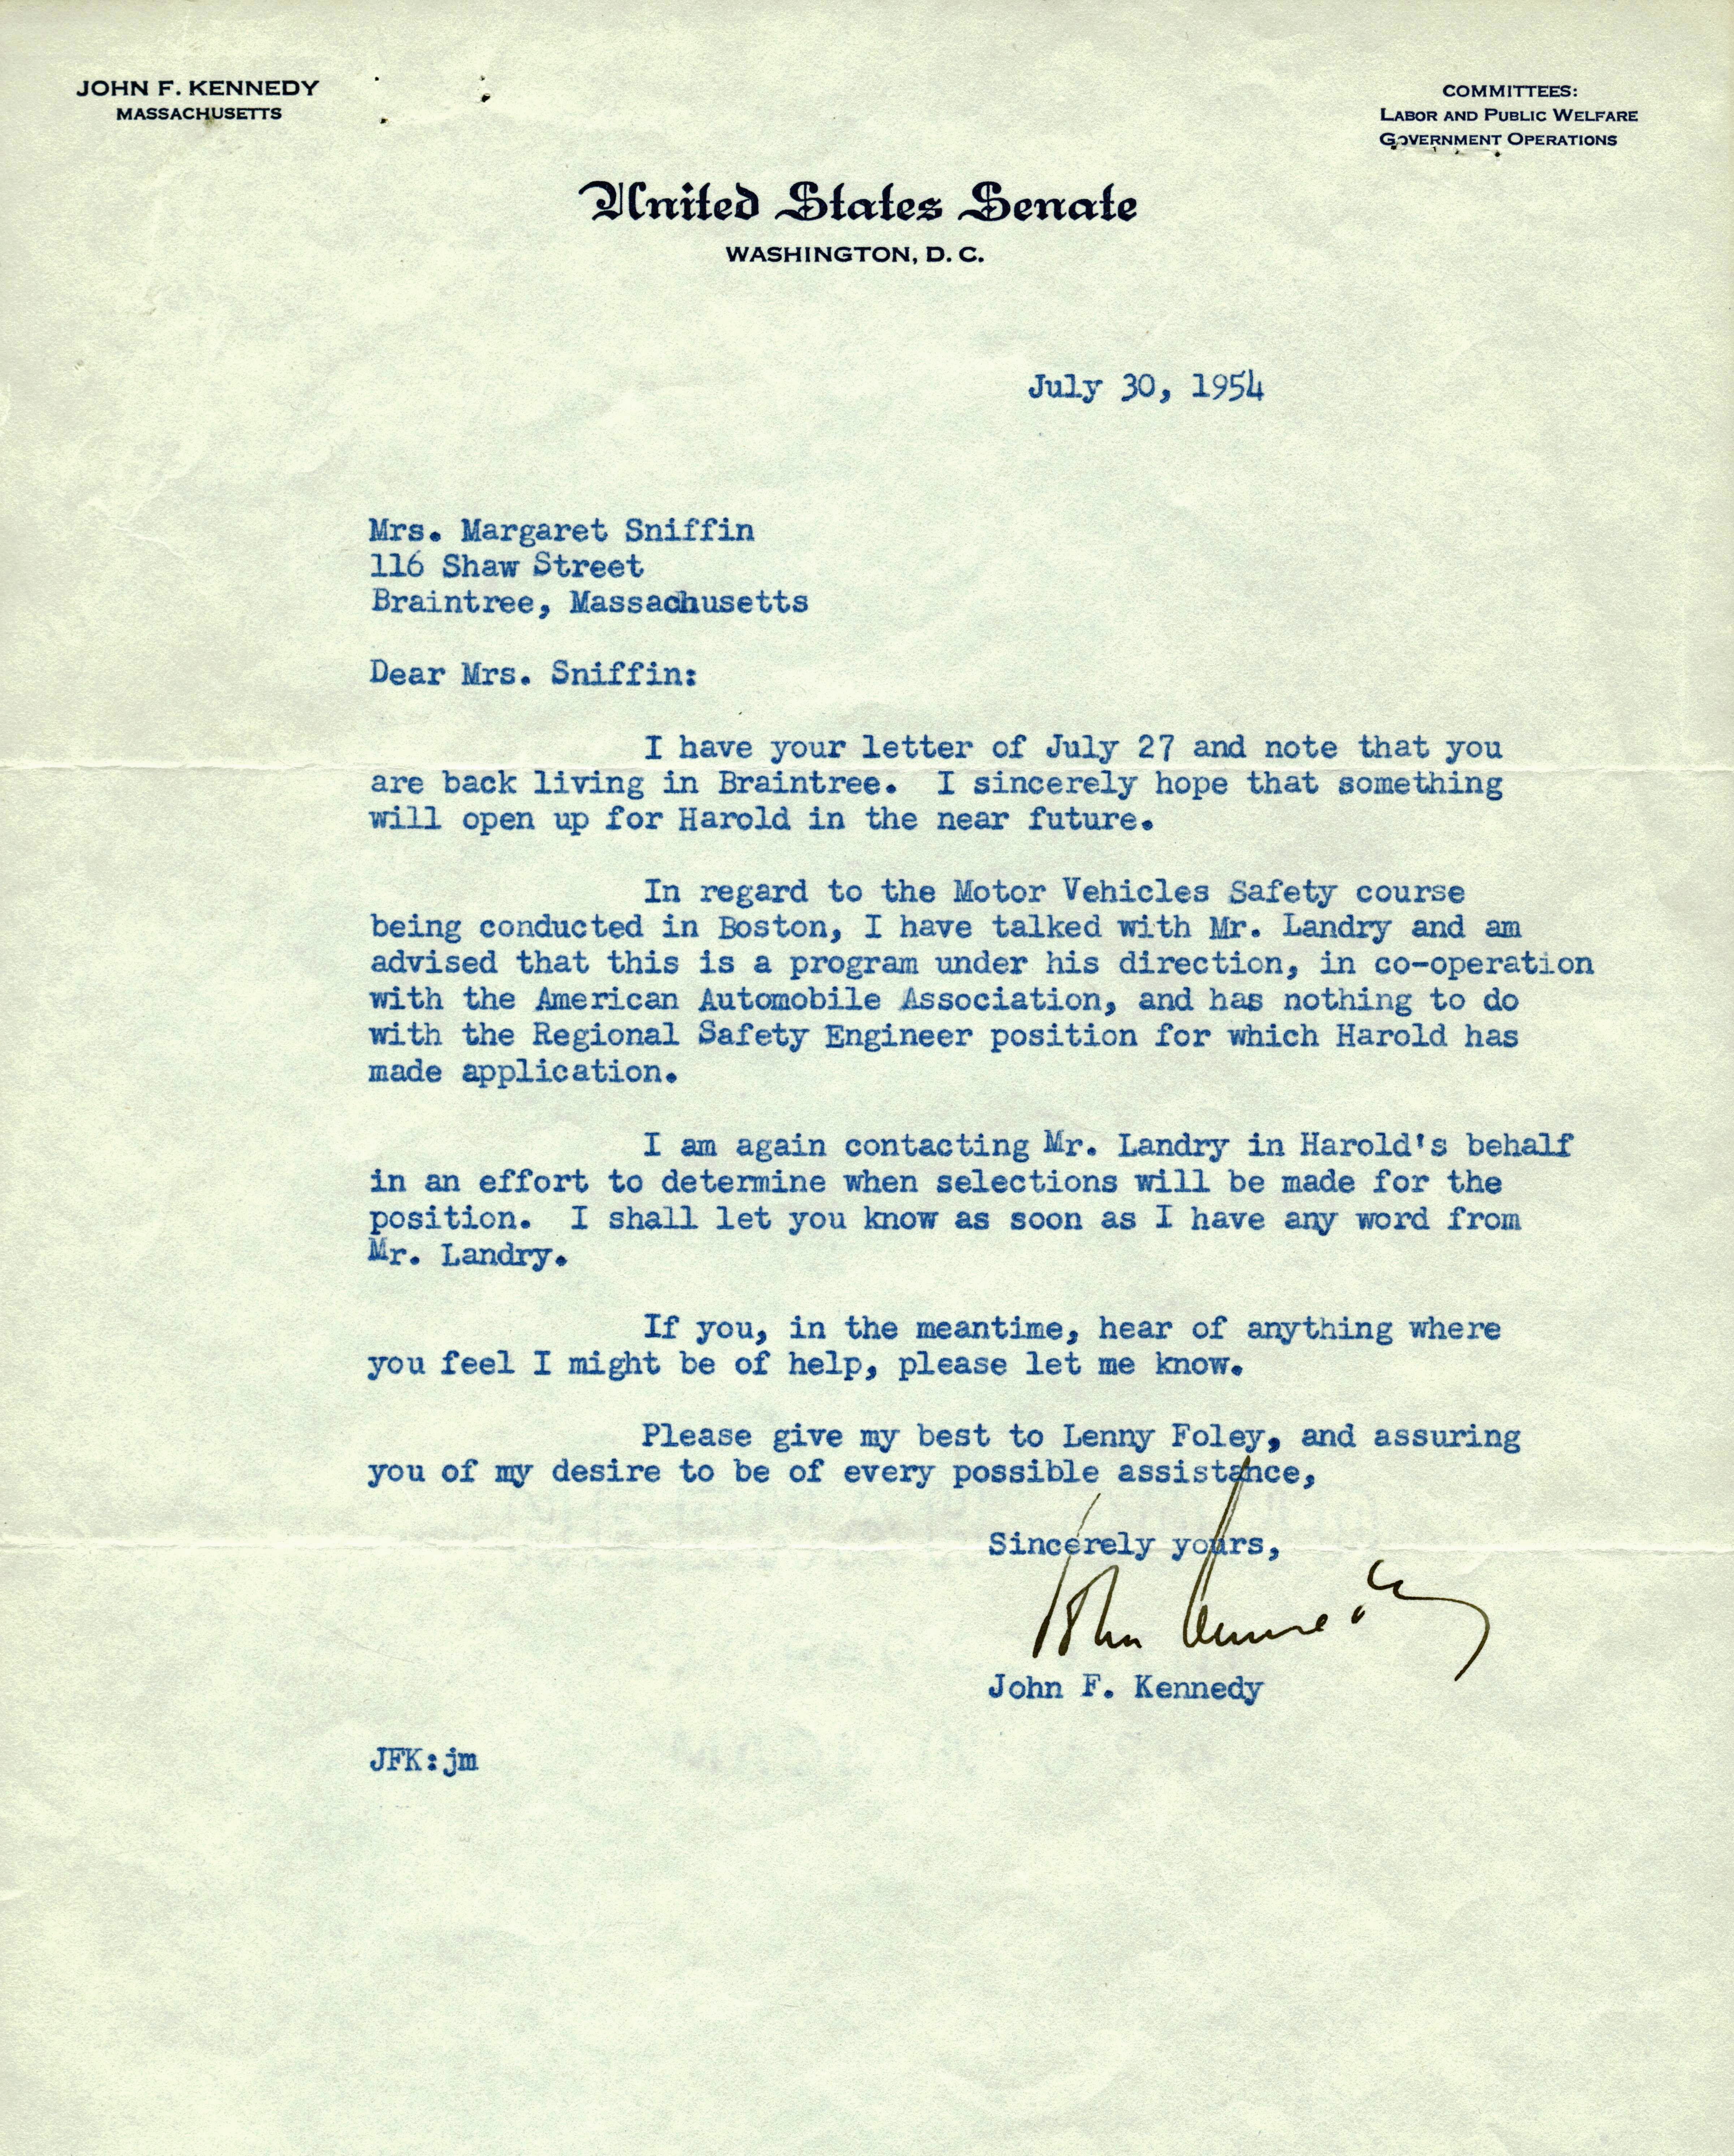 an overview of the letter for the president of united states Letter from president kennedy to chairman khrushchev0 washington, april 18, 1961 mr chairman: you are under a serious misapprehension in regard to events in cuba for months there has been evident and growing resistance to the castro dictatorship more than 100,000 refugees have recently fled from cuba into.